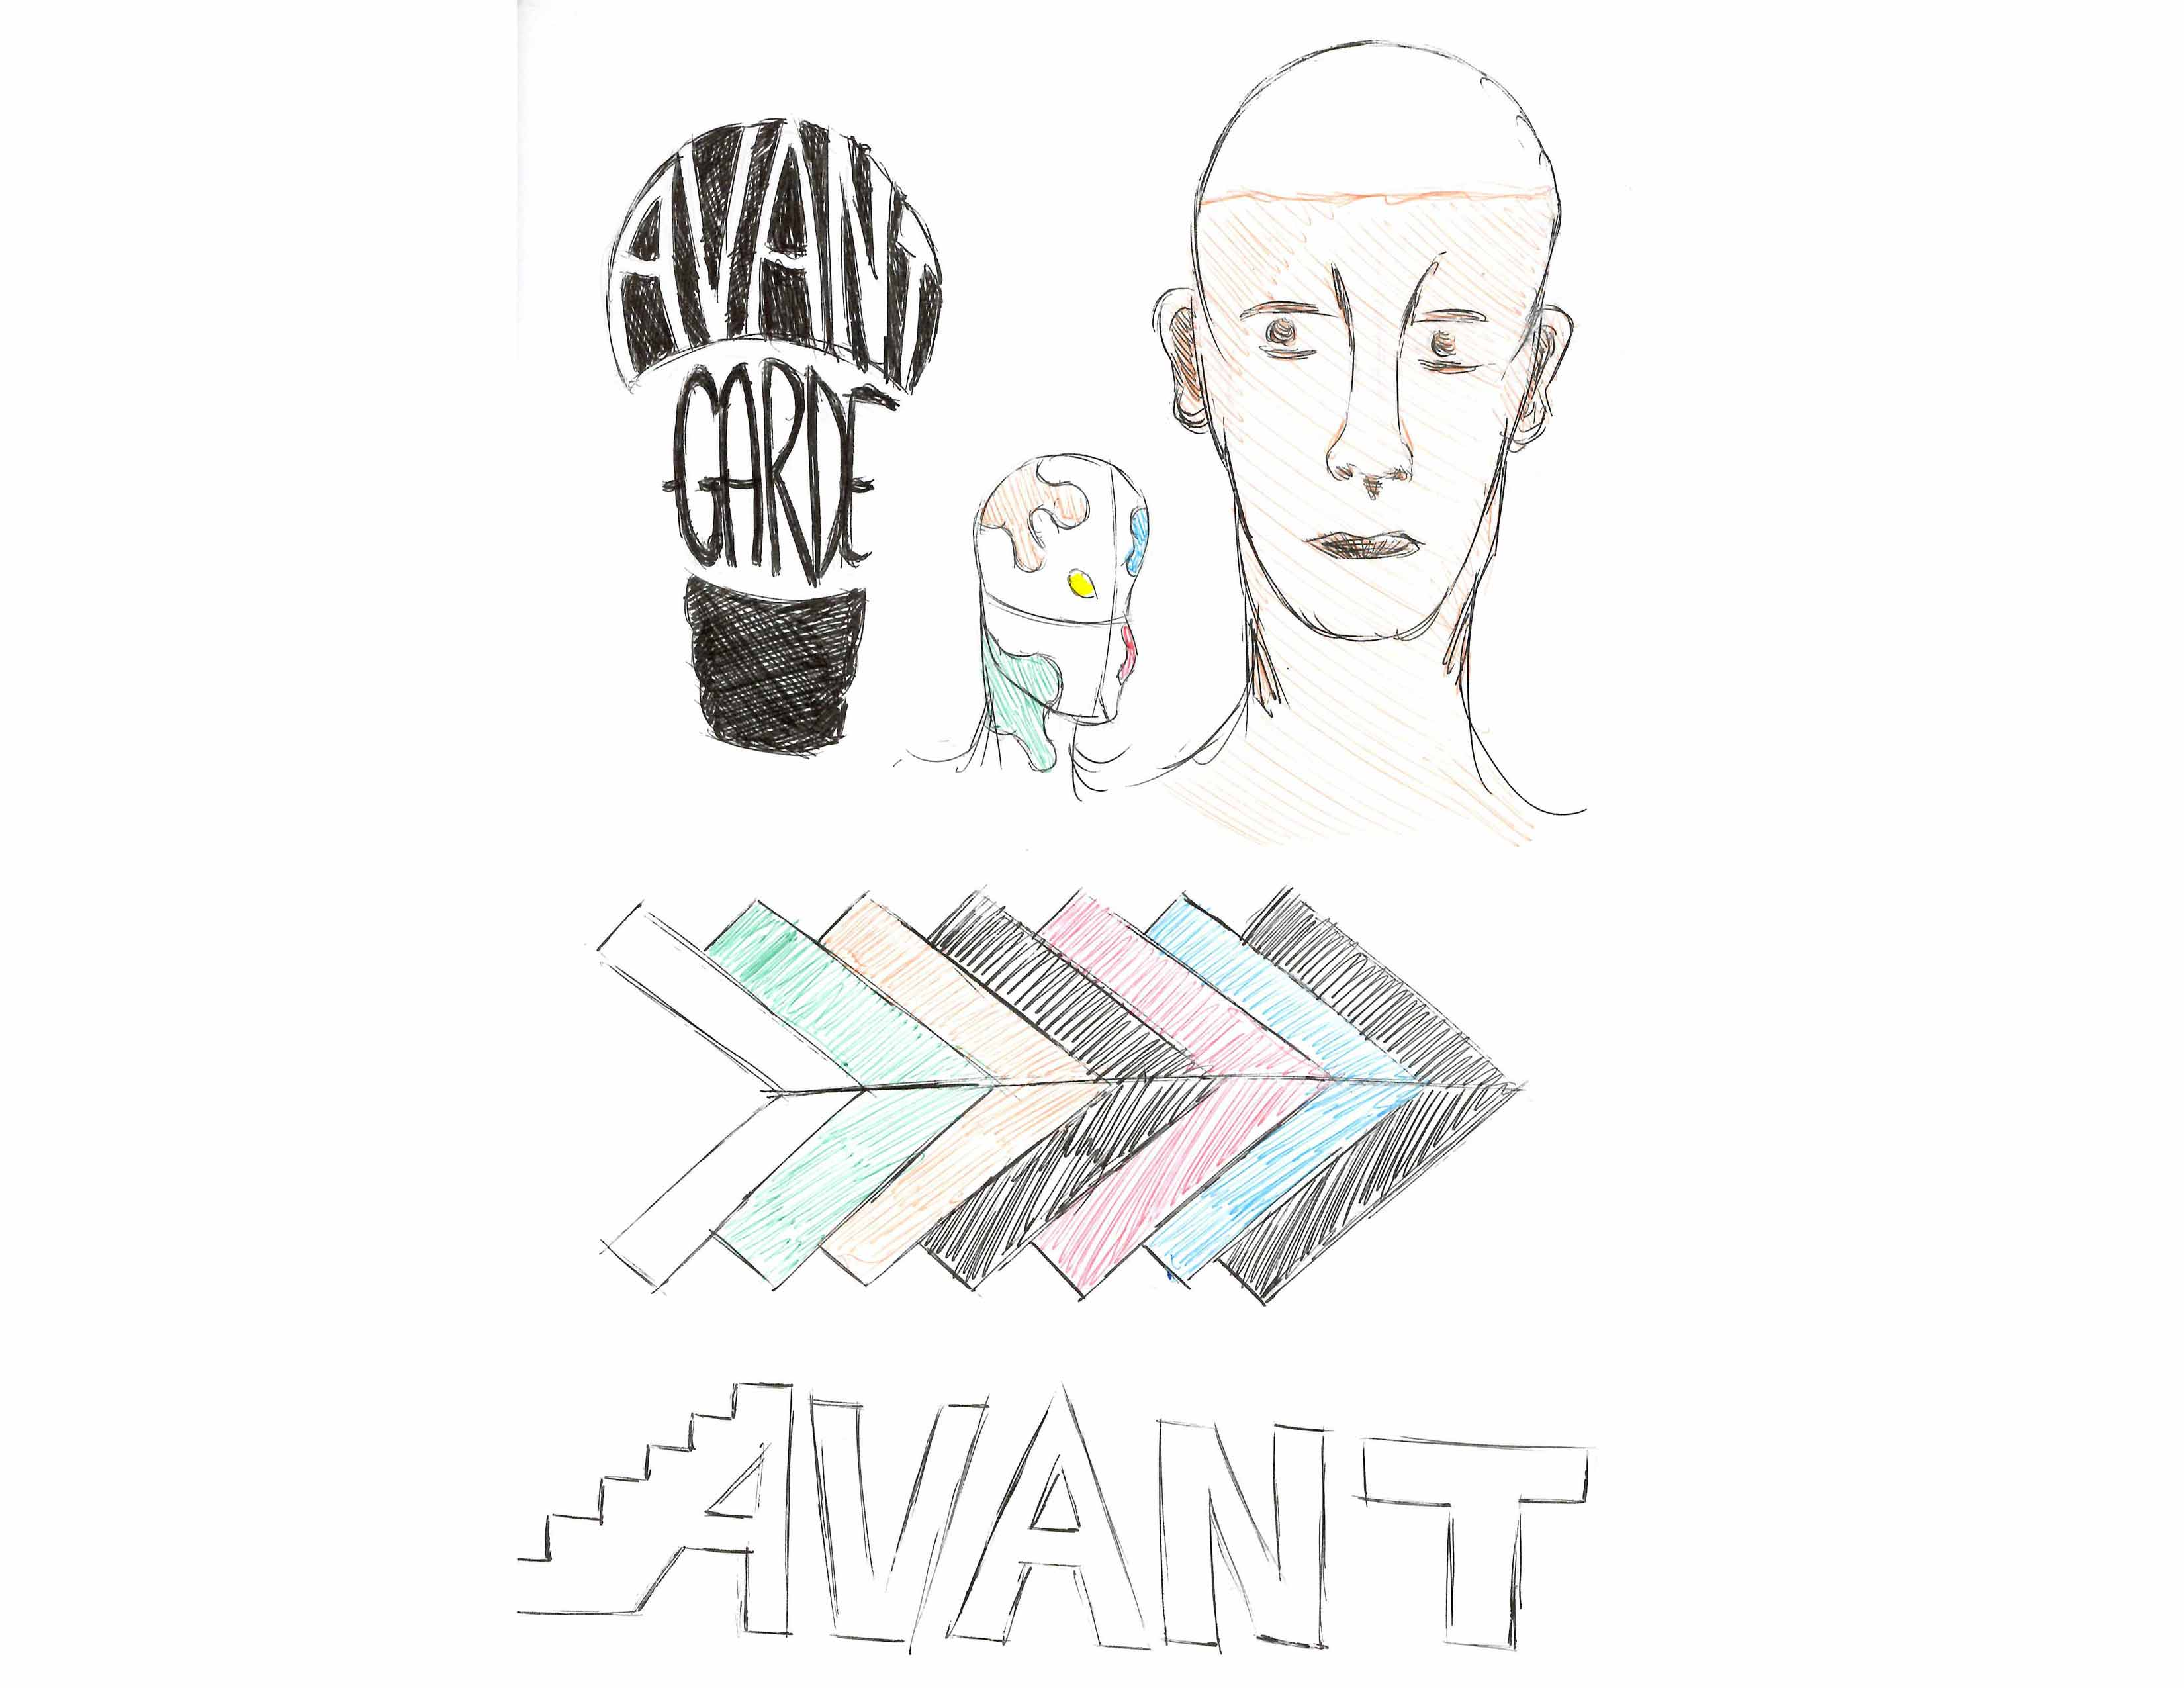 The second round of the Avant-Garde logo sketches